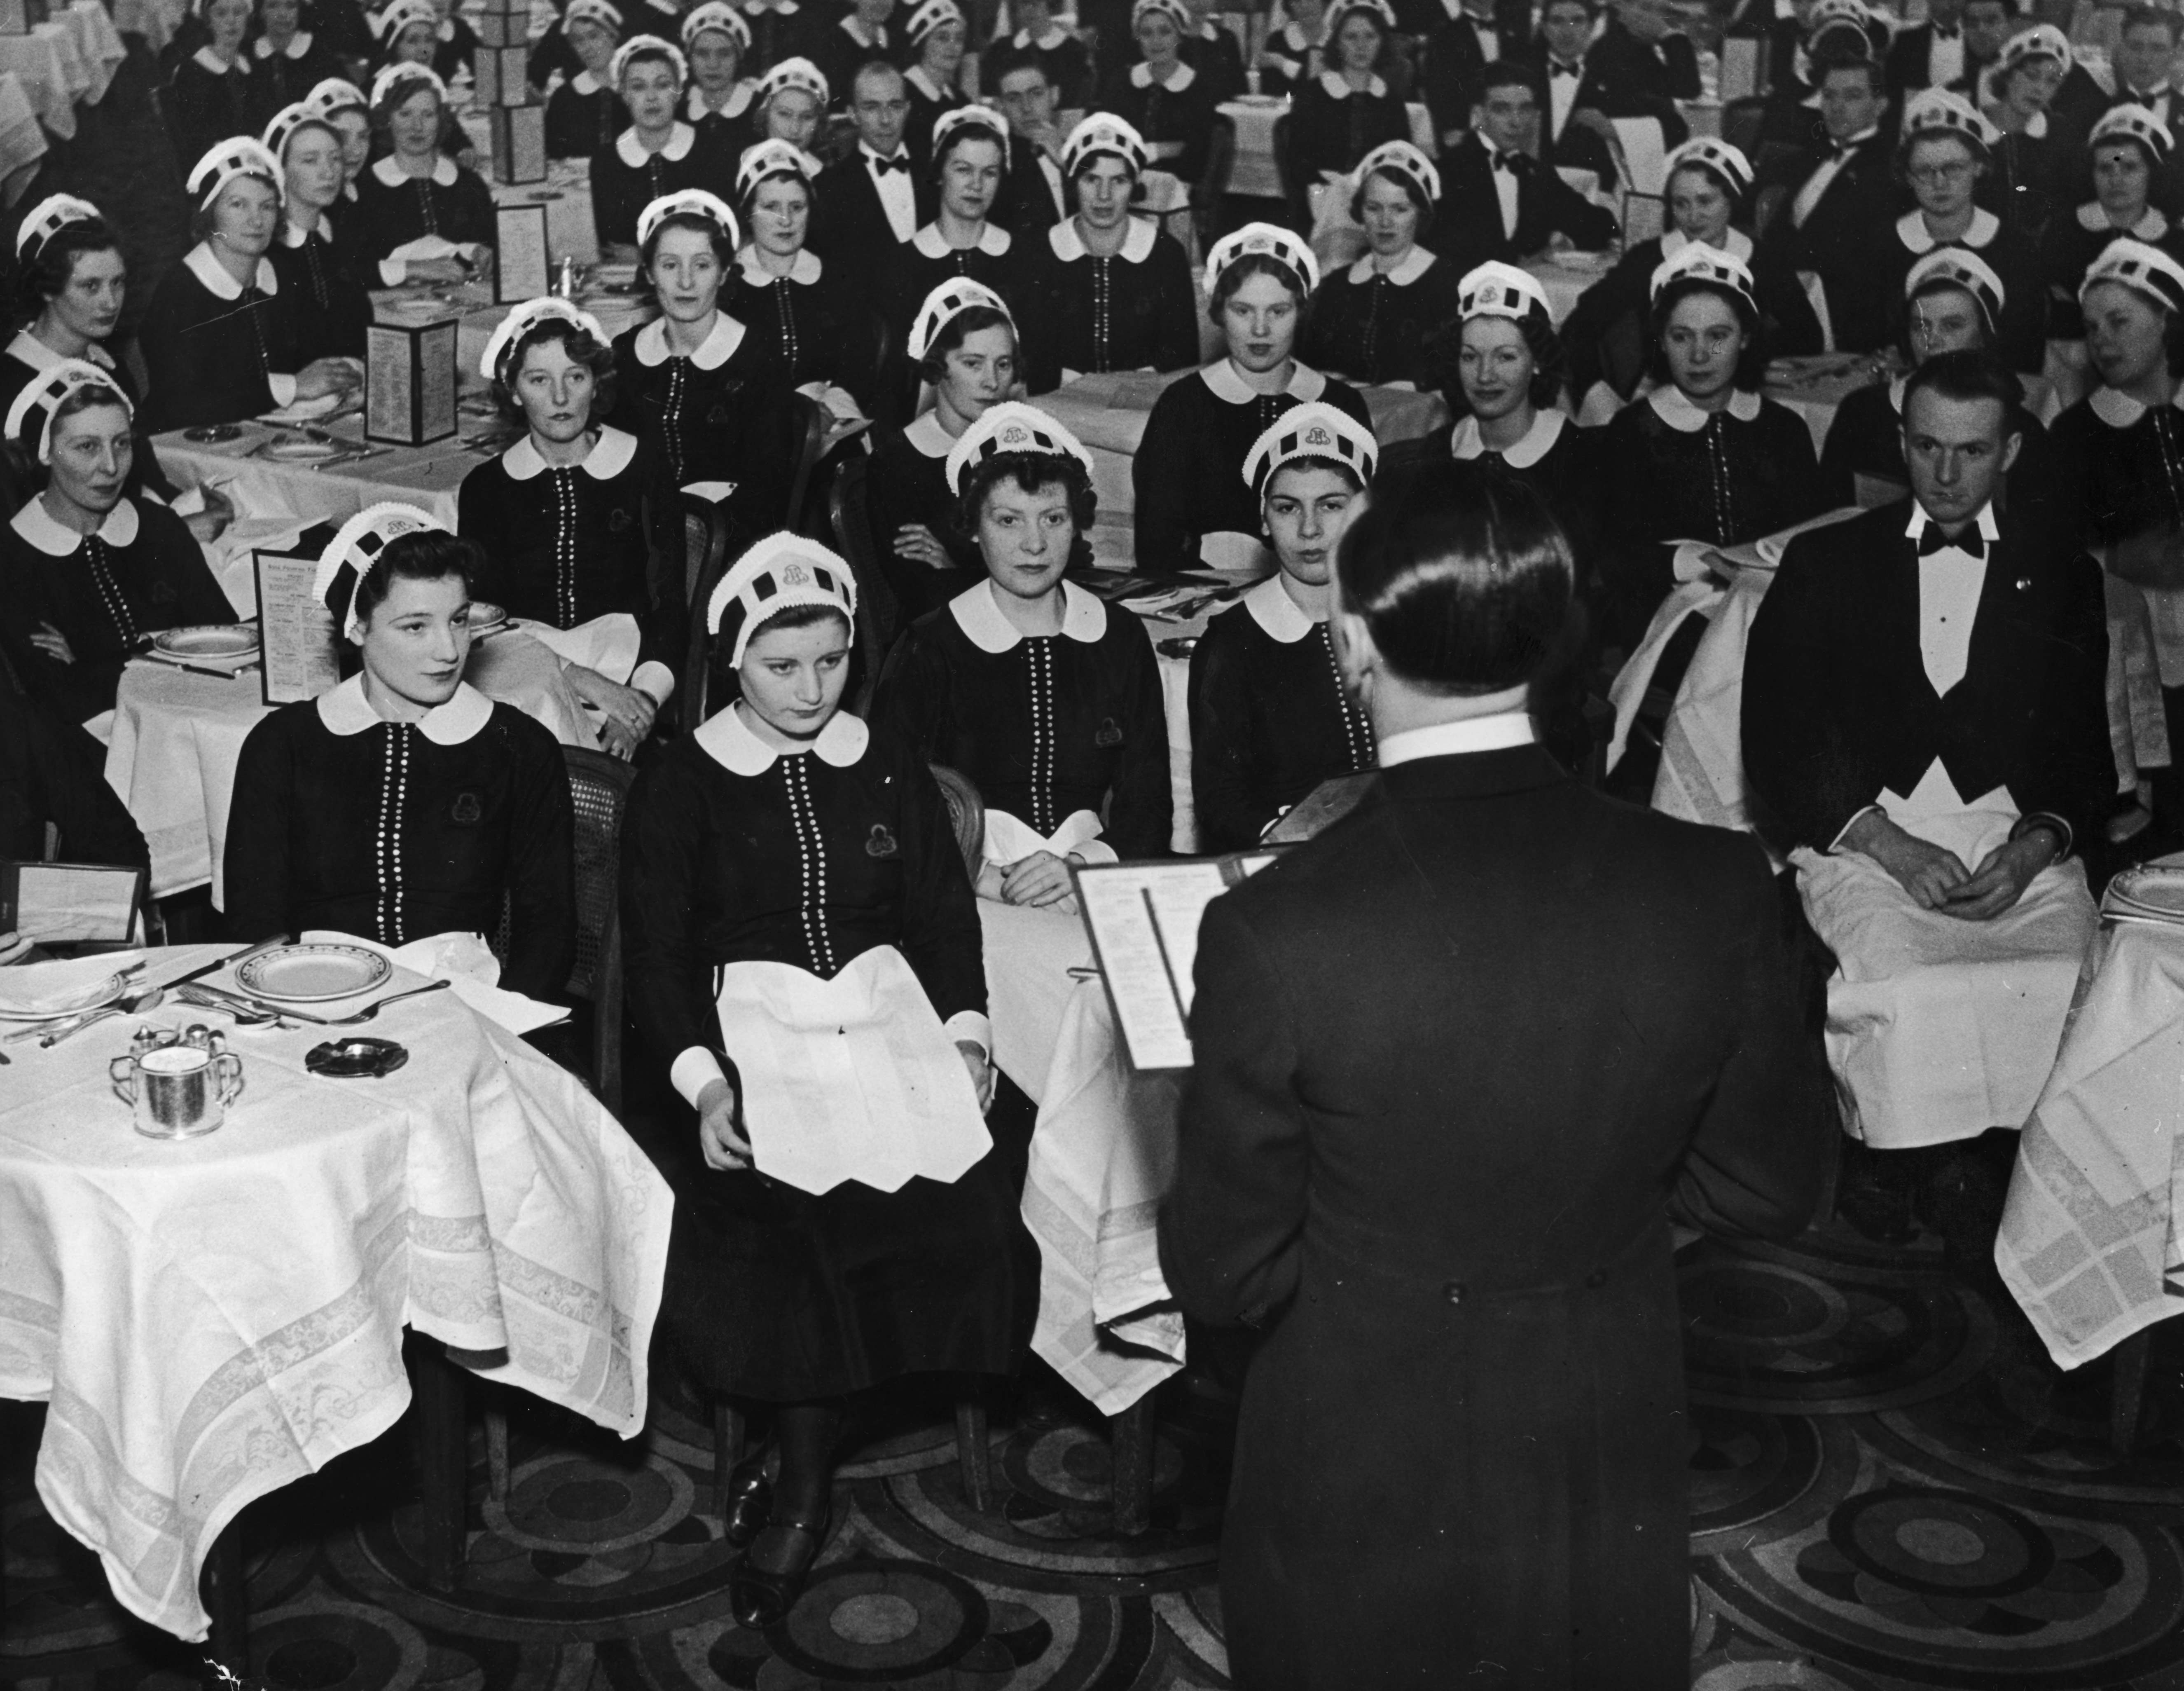 4th March 1939:  Waitresses, known as Nippies, at Lyon's Corner House in London receiving their instructions at the start of the day.  (Photo by Bill Brandt/Picture Post/Getty Images)